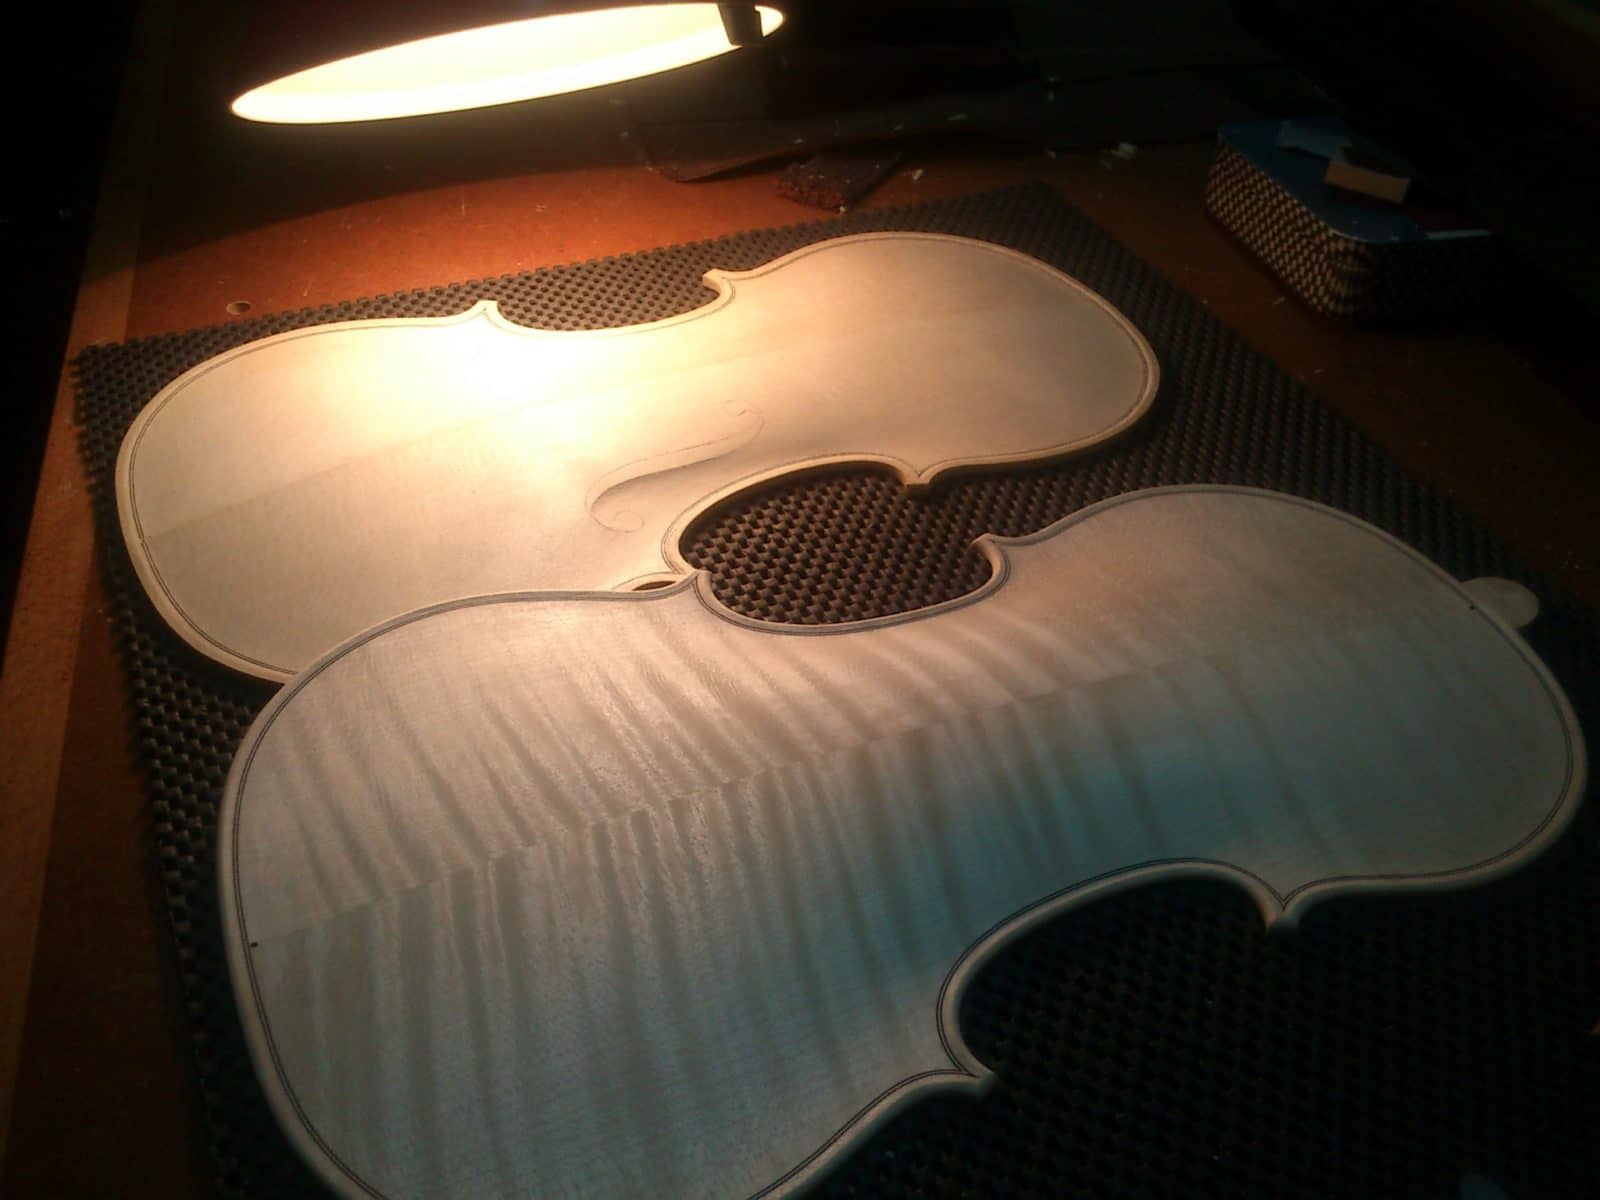 Commander un instrument d'exception chez un luthier